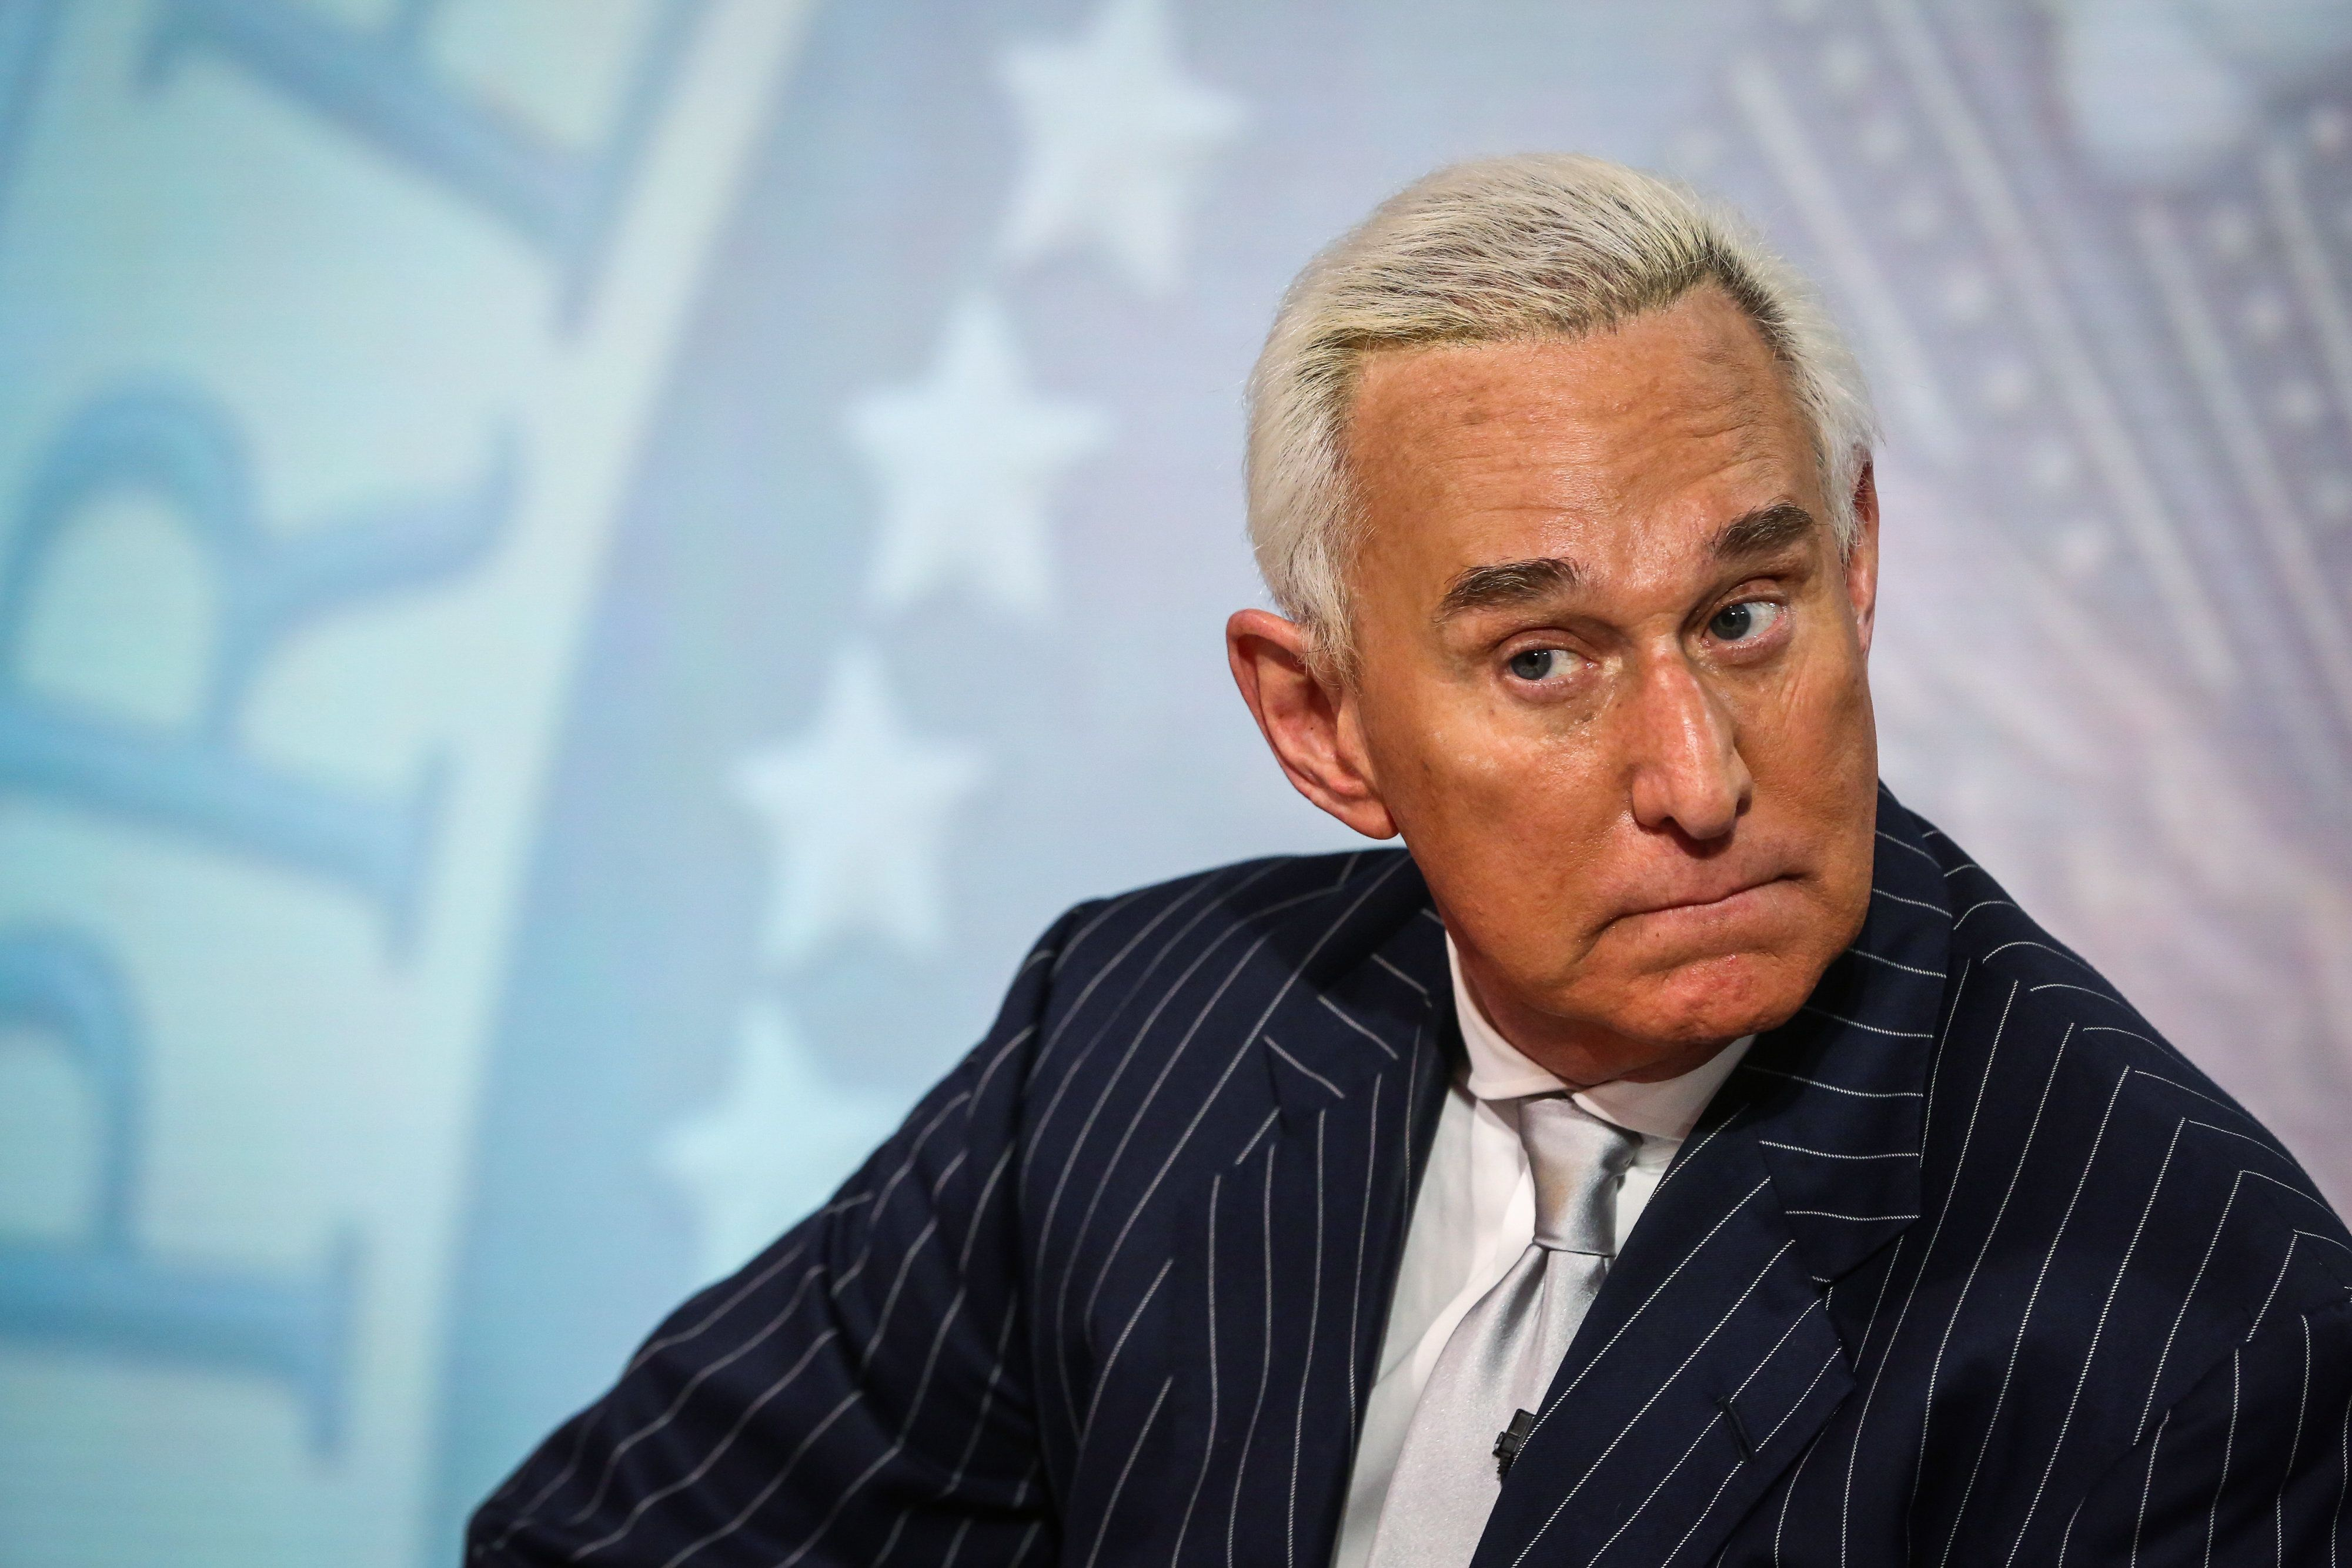 Roger Stone, former adviser to Donald Trump's presidential campaign, listens during a Bloomberg Television interview in New York, U.S., on Friday, May 12, 2017. Stone discussed the congressional investigation into Russia's alleged meddling in the 2016 elections. Photographer: Christopher Goodney/Bloomberg via Getty Images